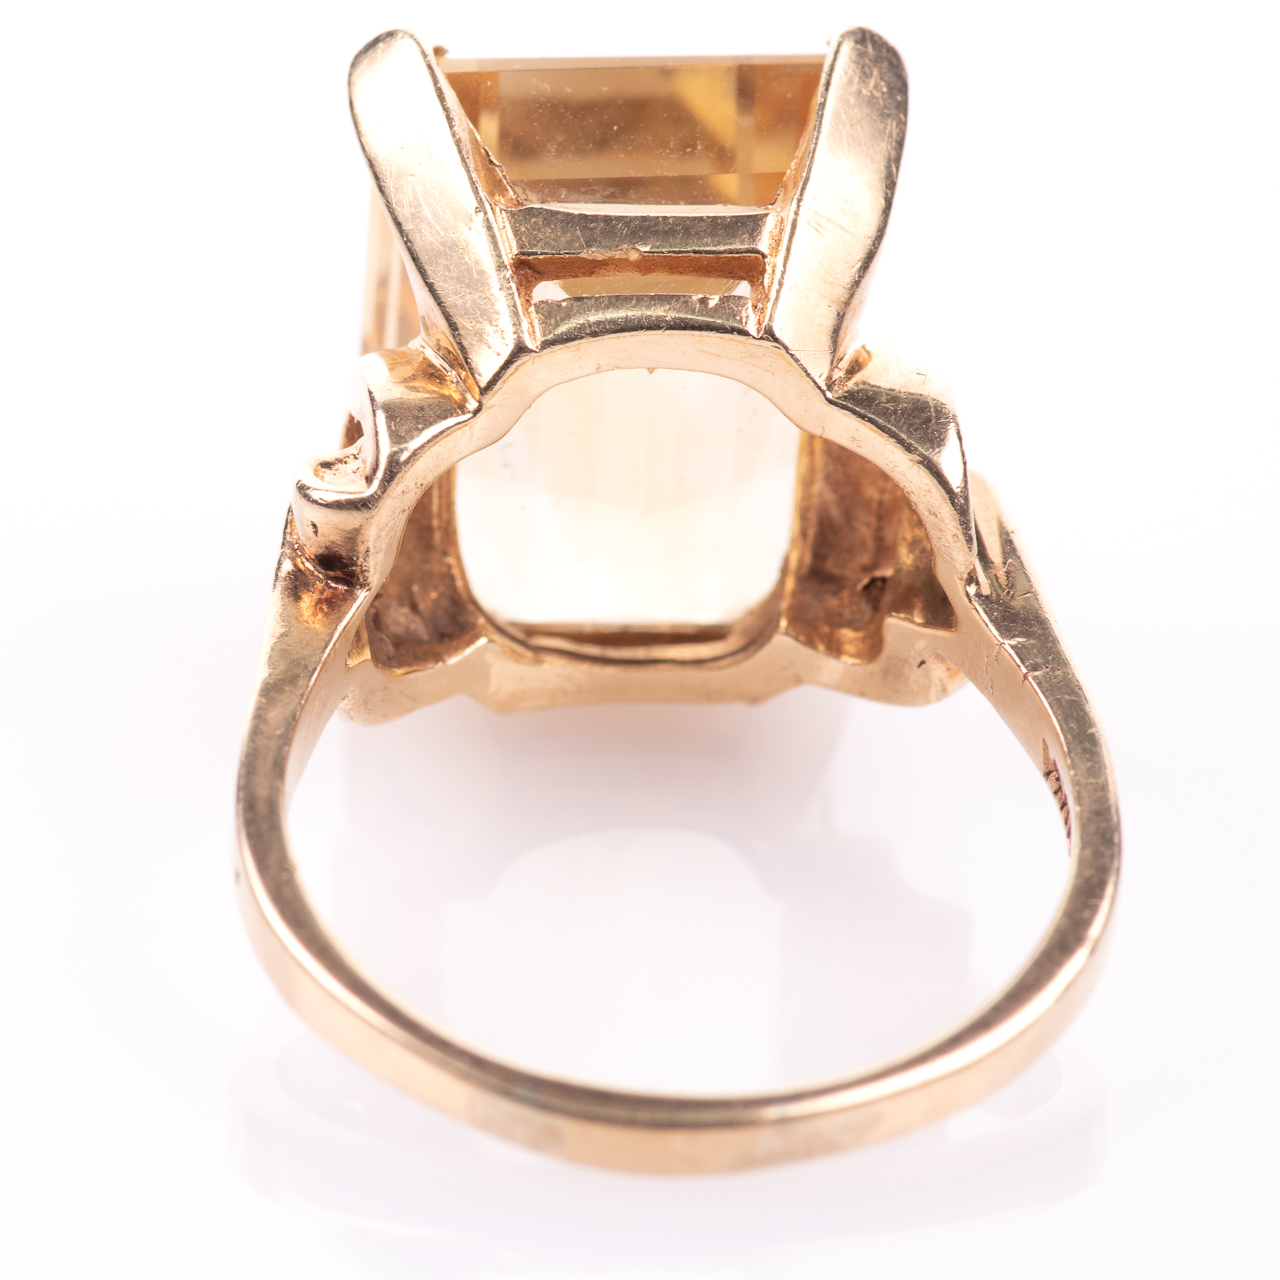 14ct Gold 15ct Citrine Ring - Image 6 of 7